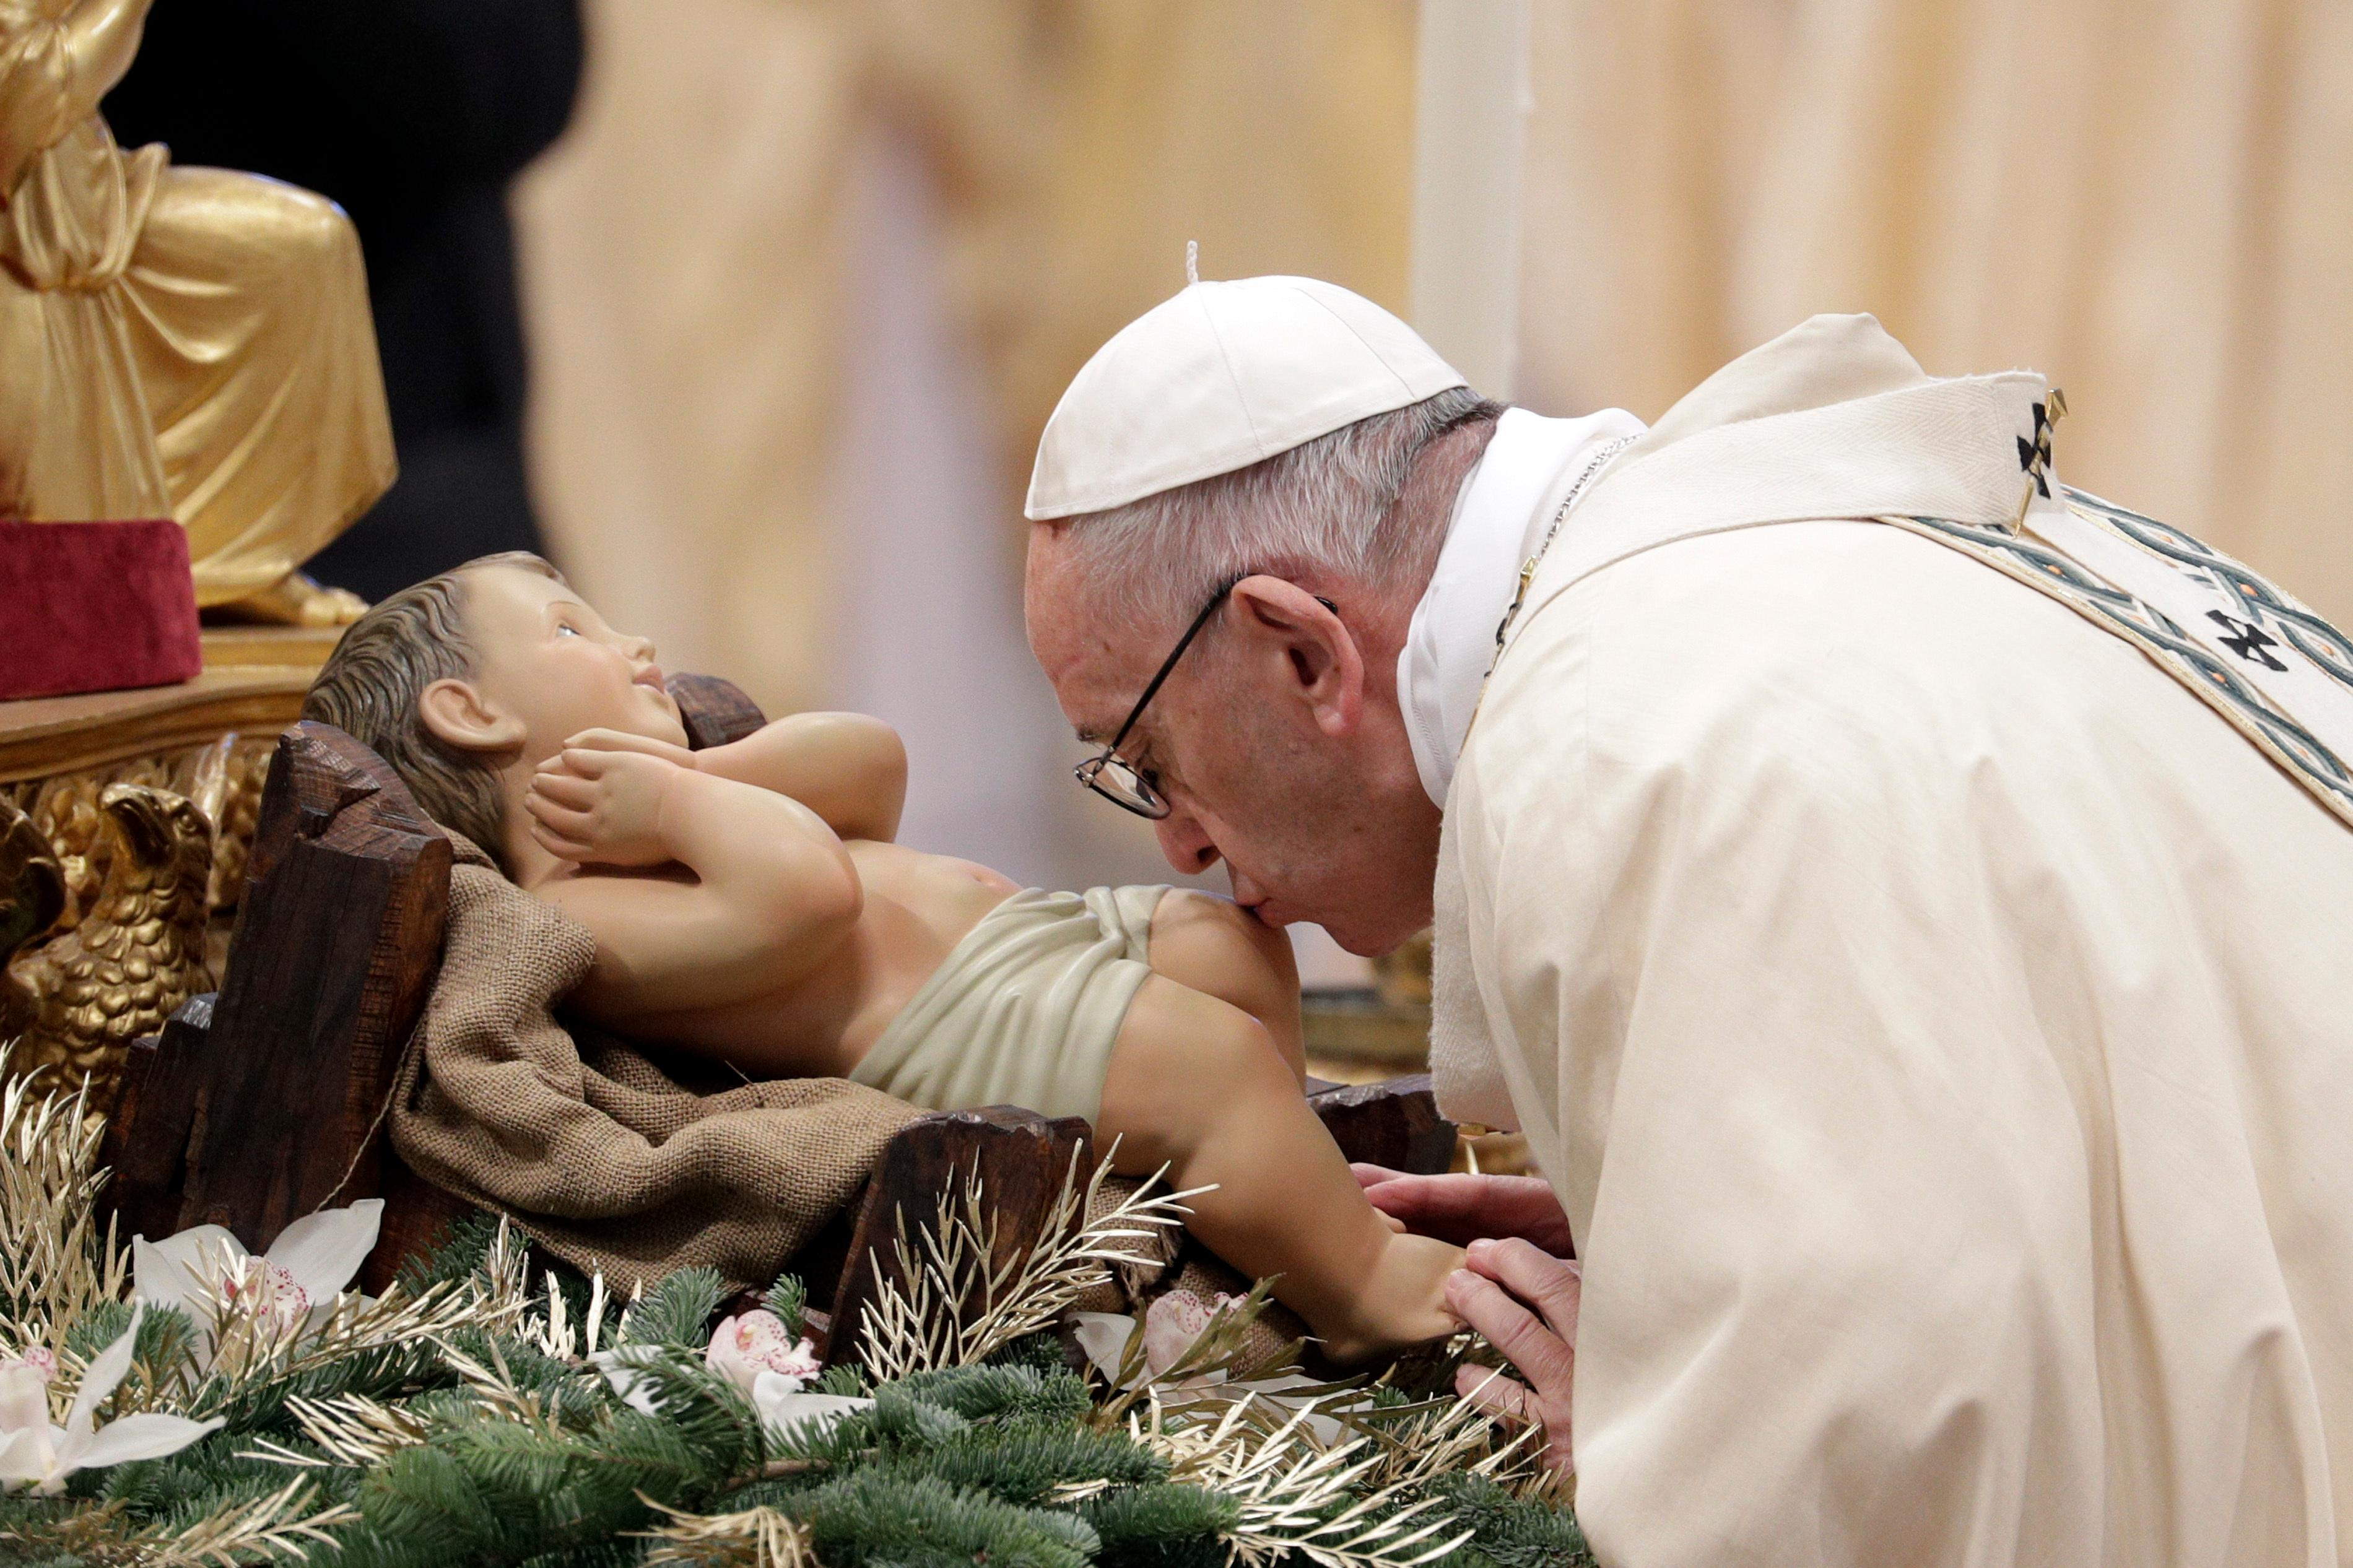 Pope Francis kisses a statue of the Divine Infant as he arrives to celebrate an Epiphany Mass in St. Peter's Basilica at the Vatican, Saturday, Jan. 6, 2018. (AP Photo/Andrew Medichini)